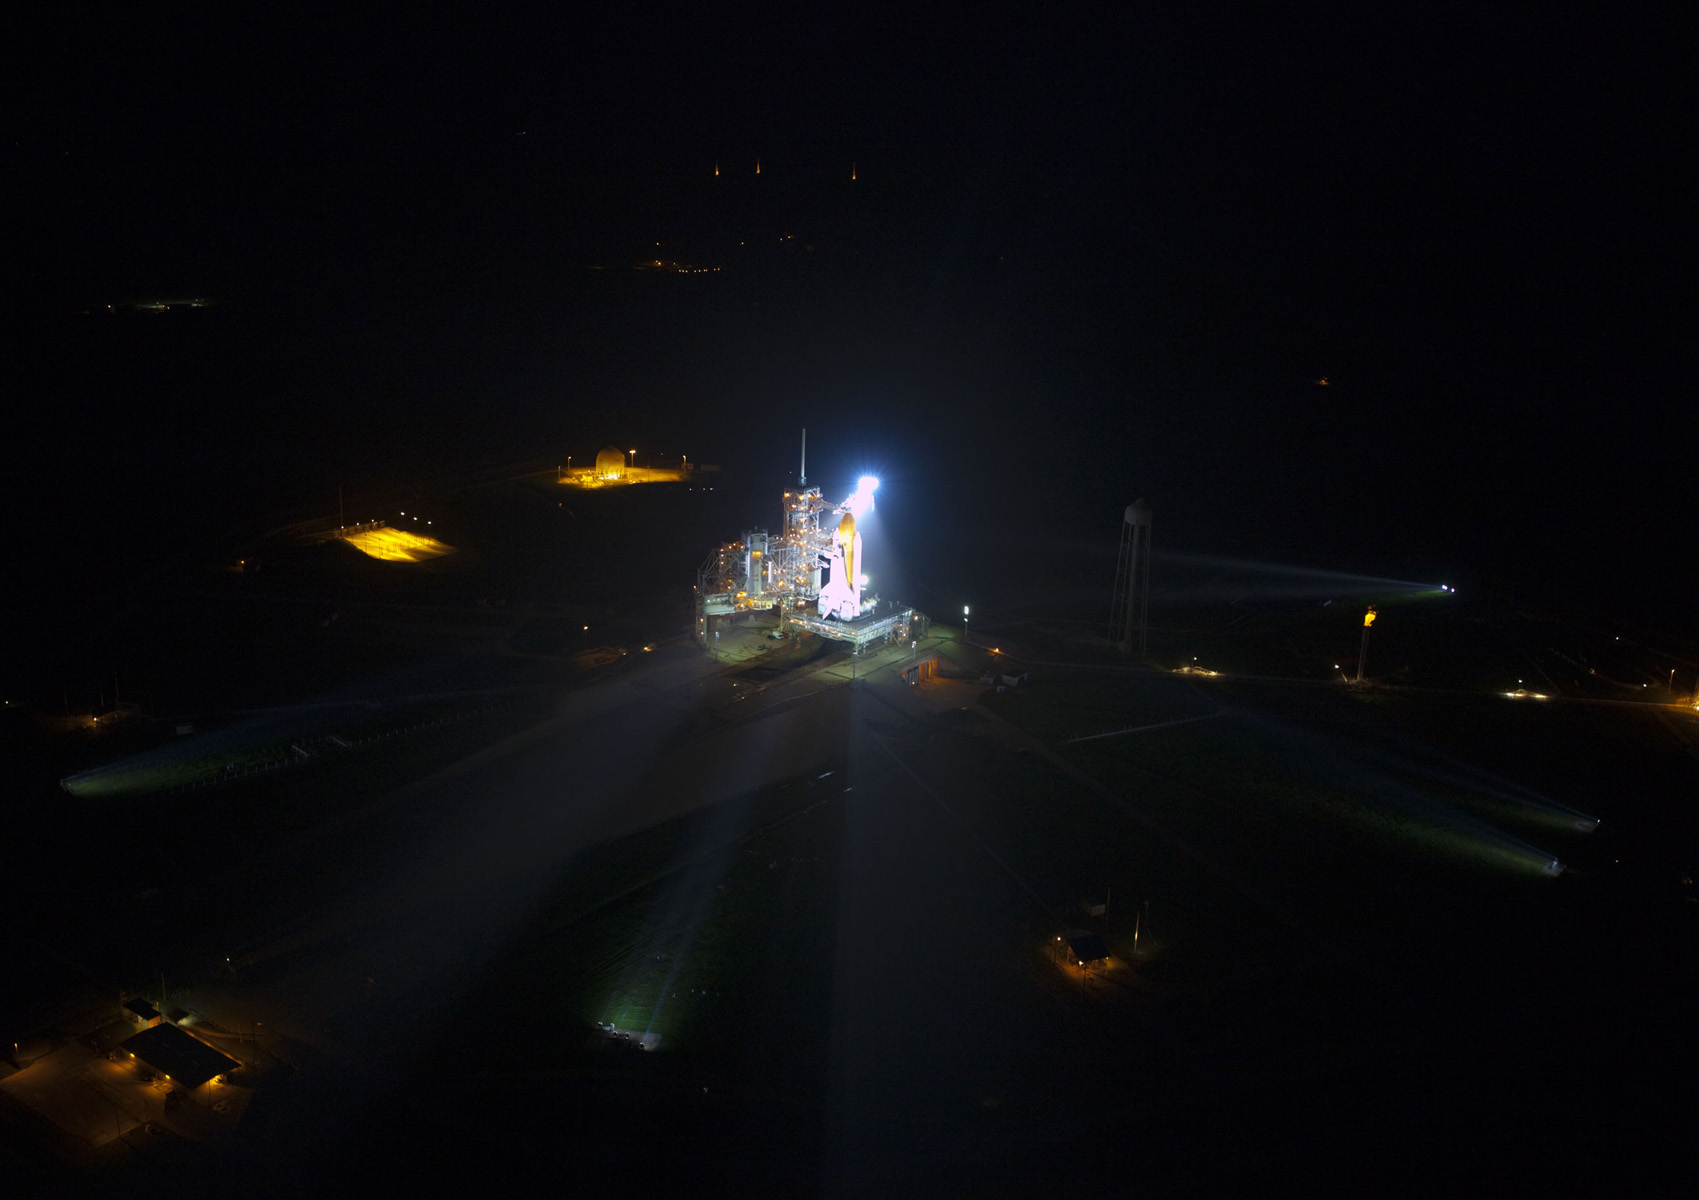 Space shuttle Atlantis lit up on launch pad